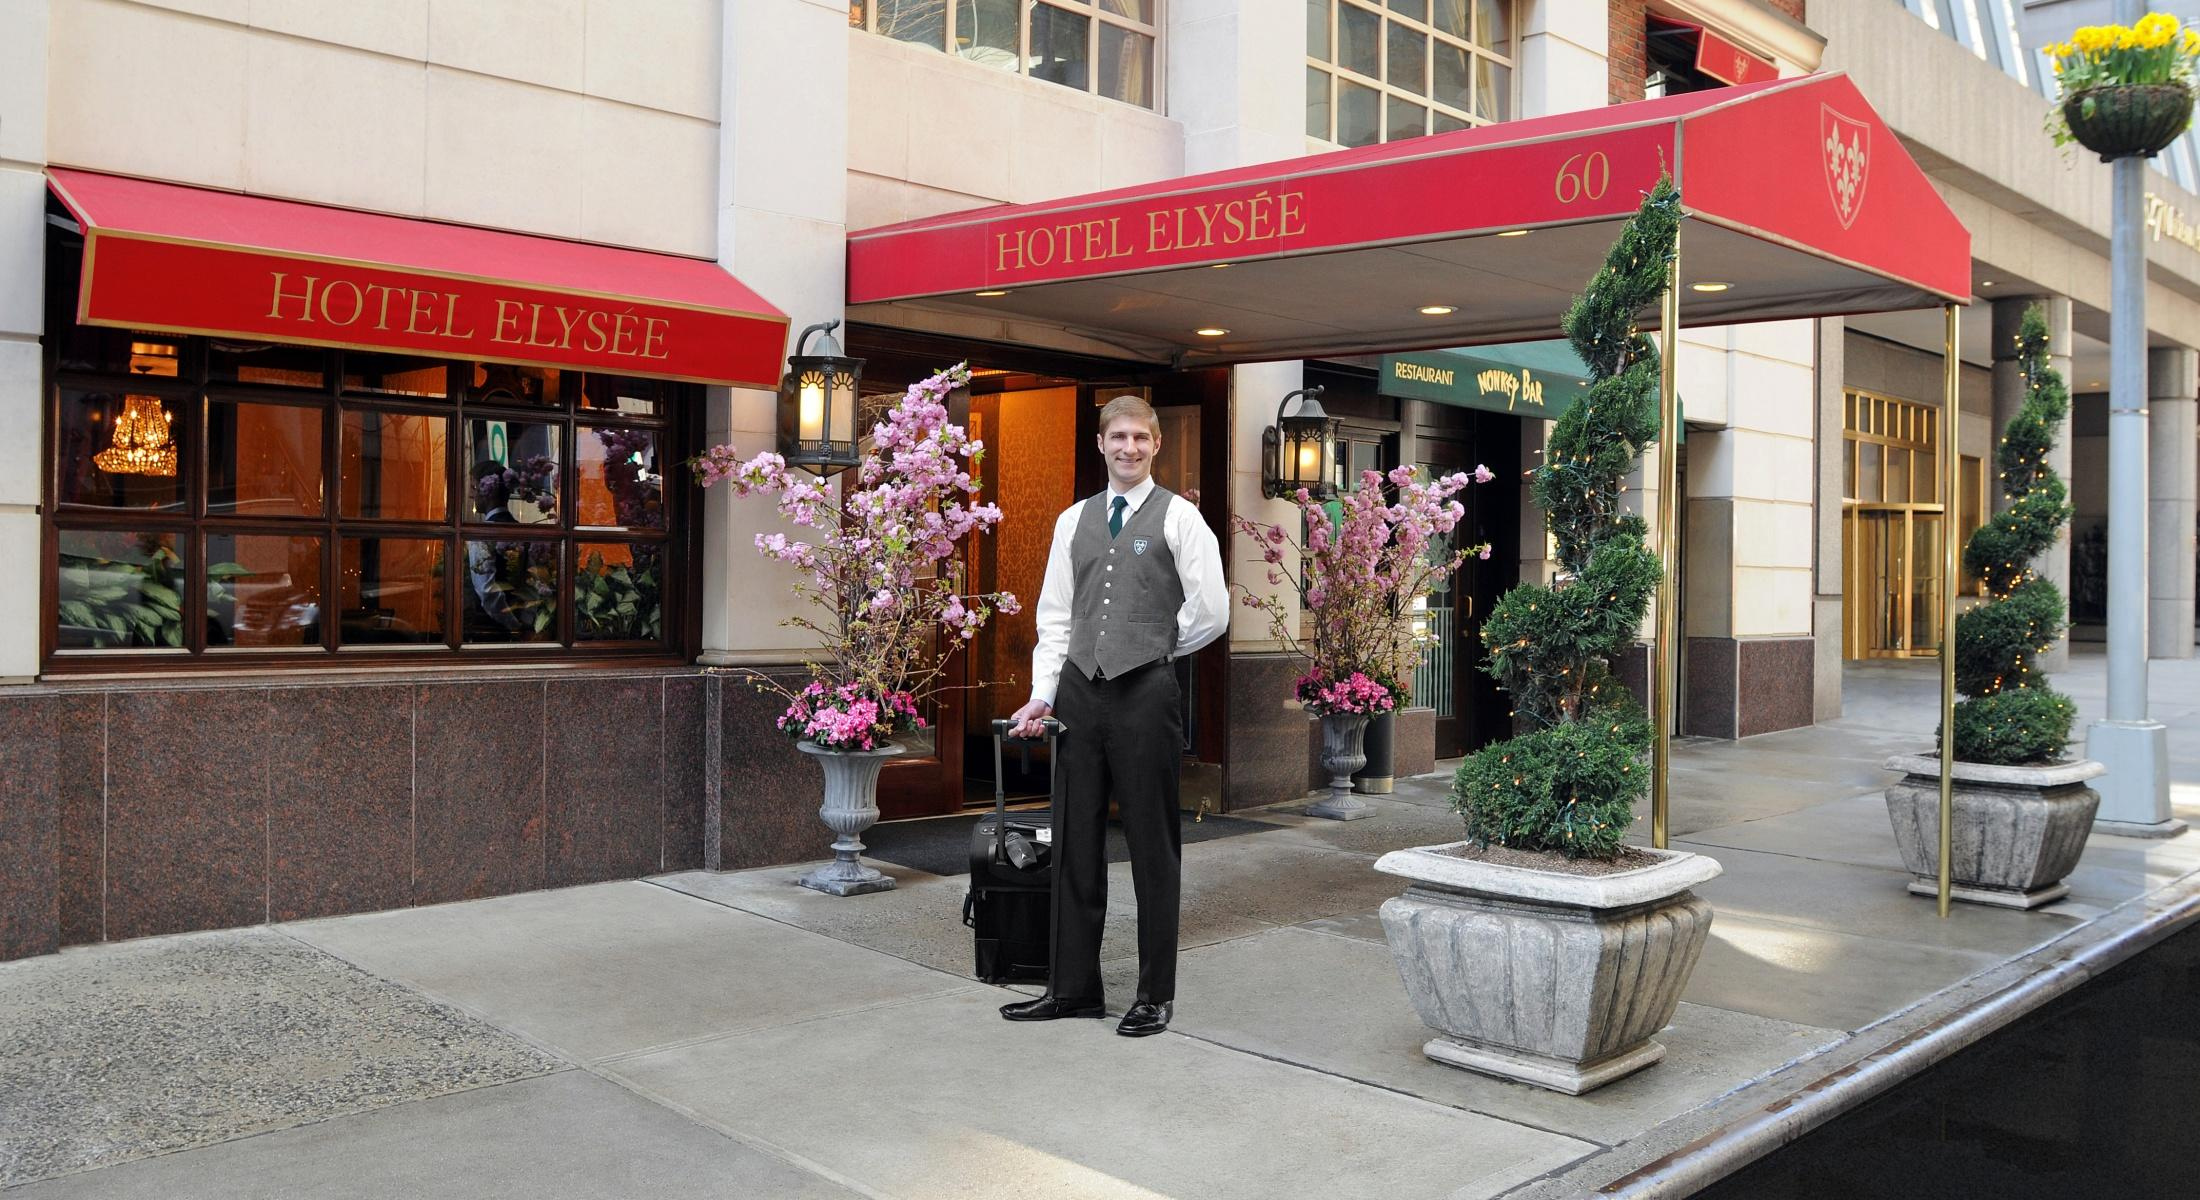 The Hotel Elysée is located on East 54th Street between Park and Madison Avenues.